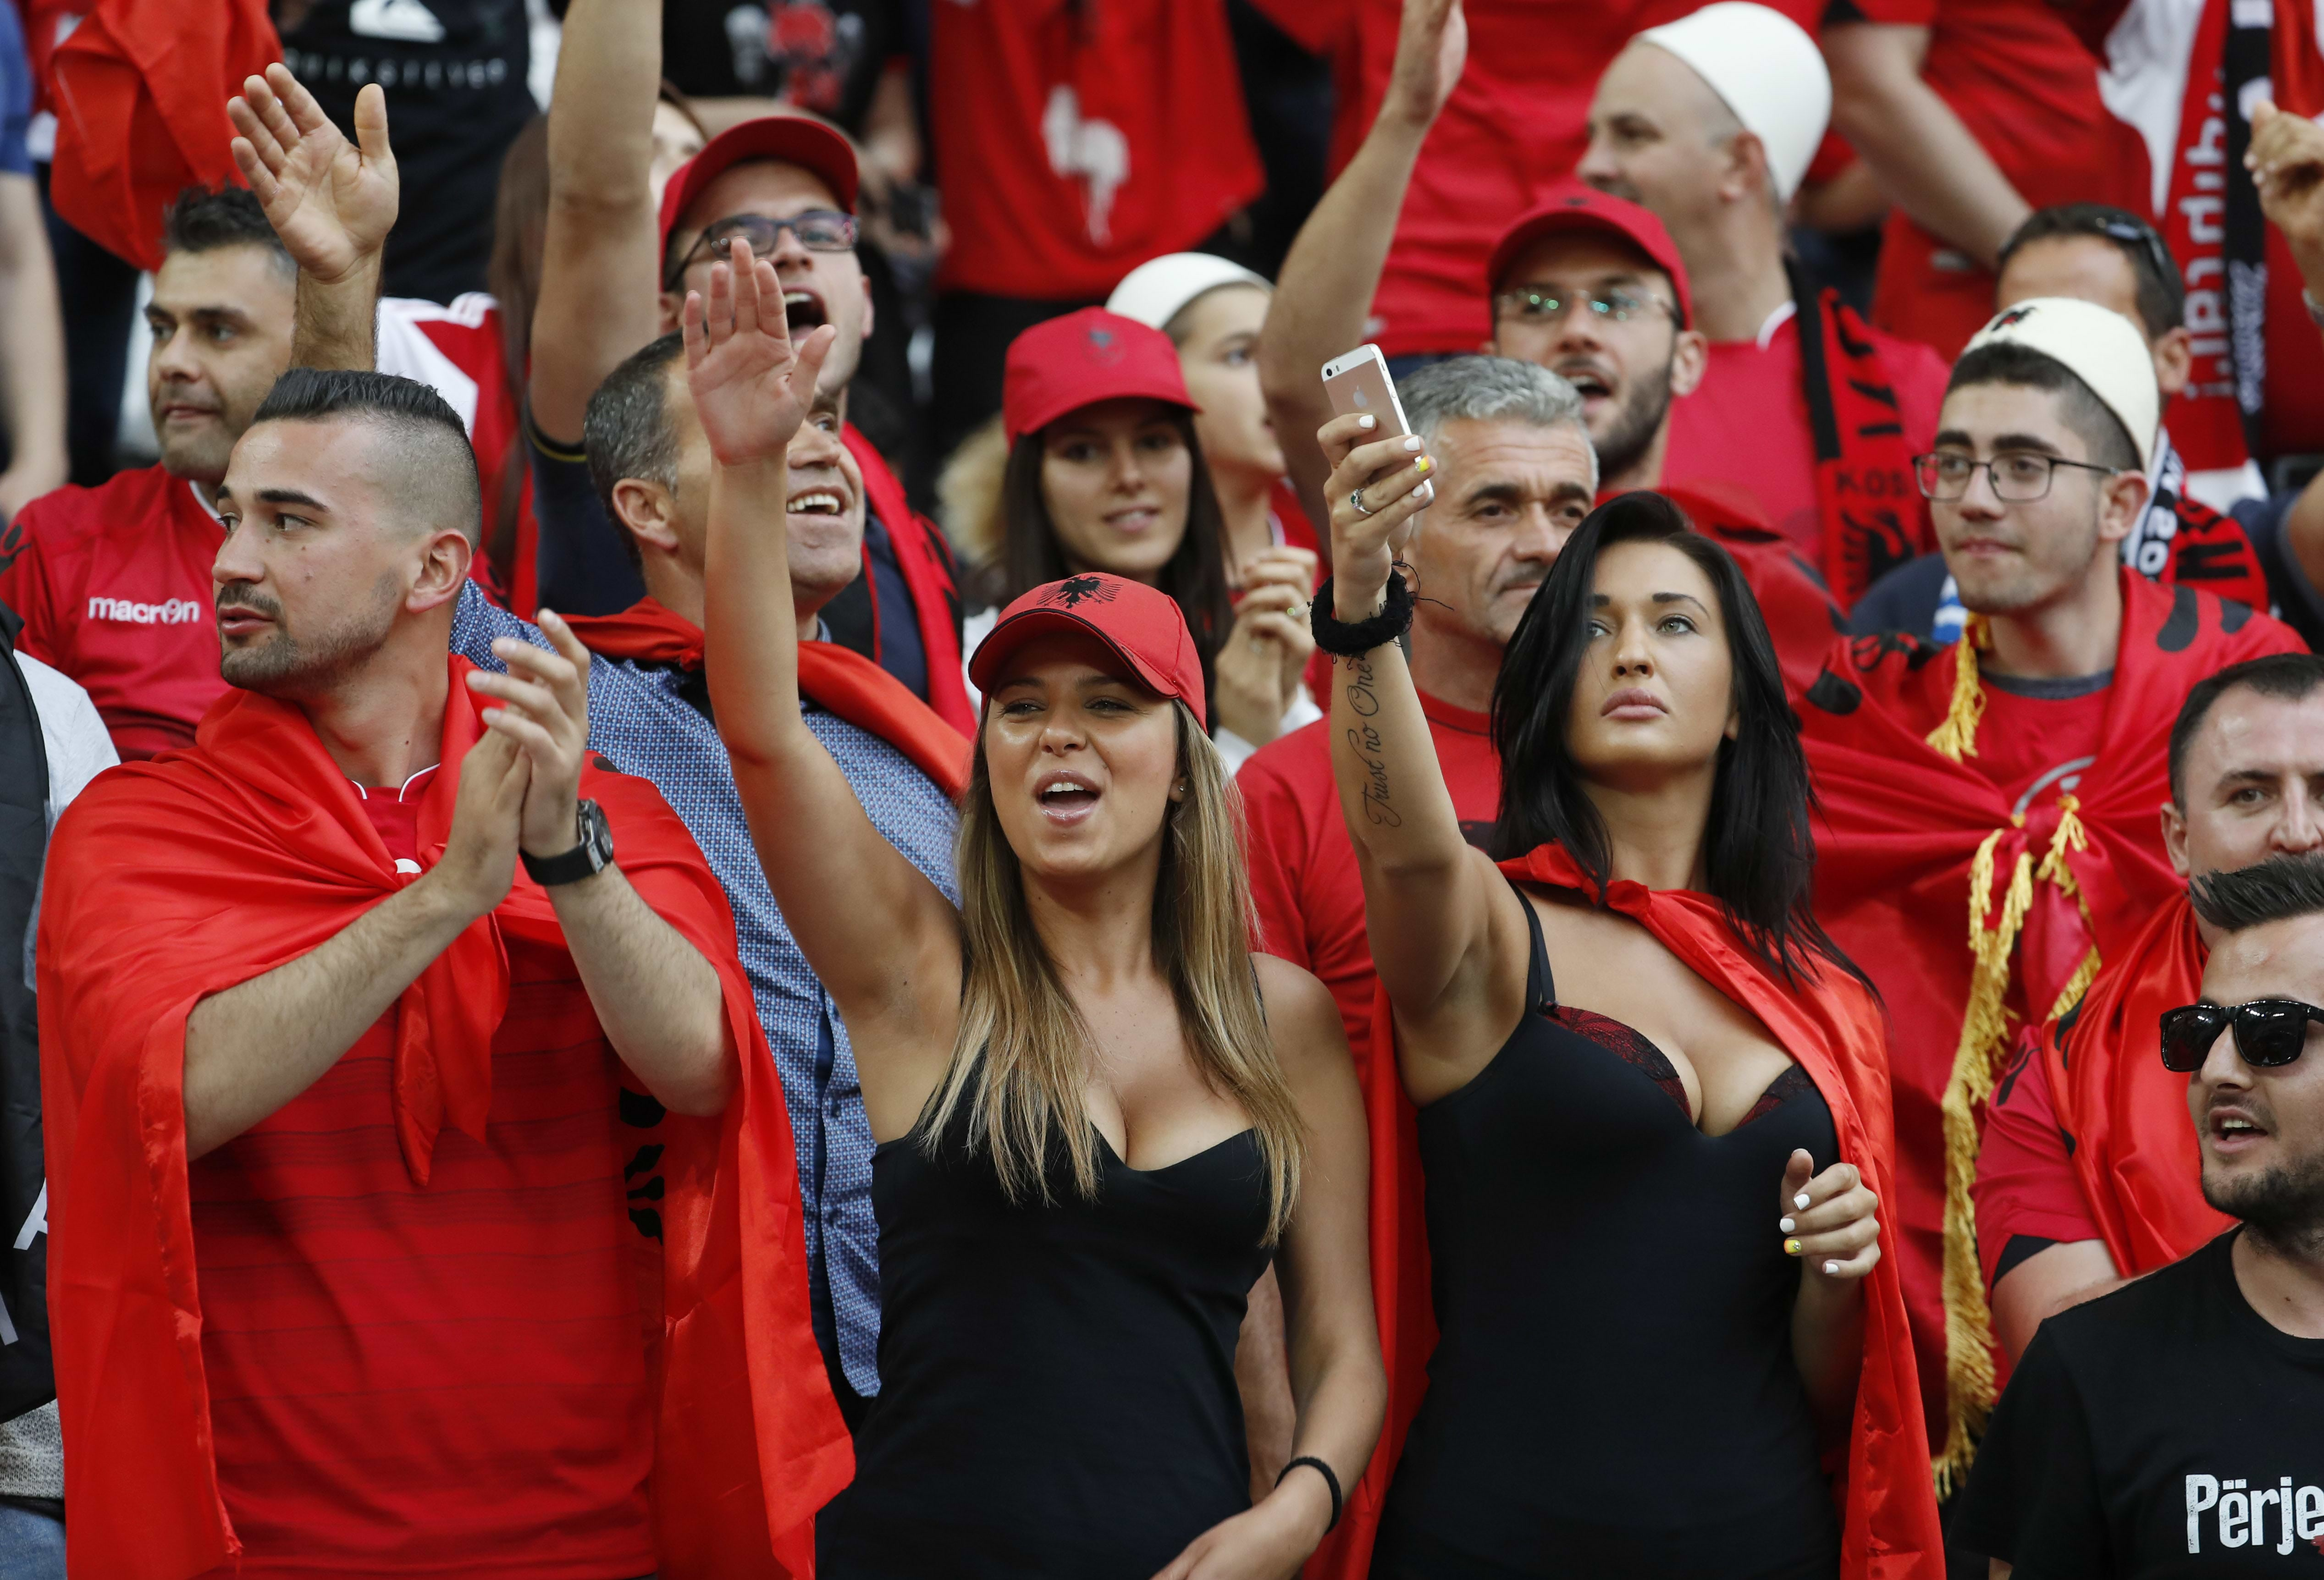 Football Soccer - France v Albania - EURO 2016 - Group A - Stade Vélodrome, Marseille, France - 15/6/16 Albania fans before the match REUTERS/Yves Herman Livepic